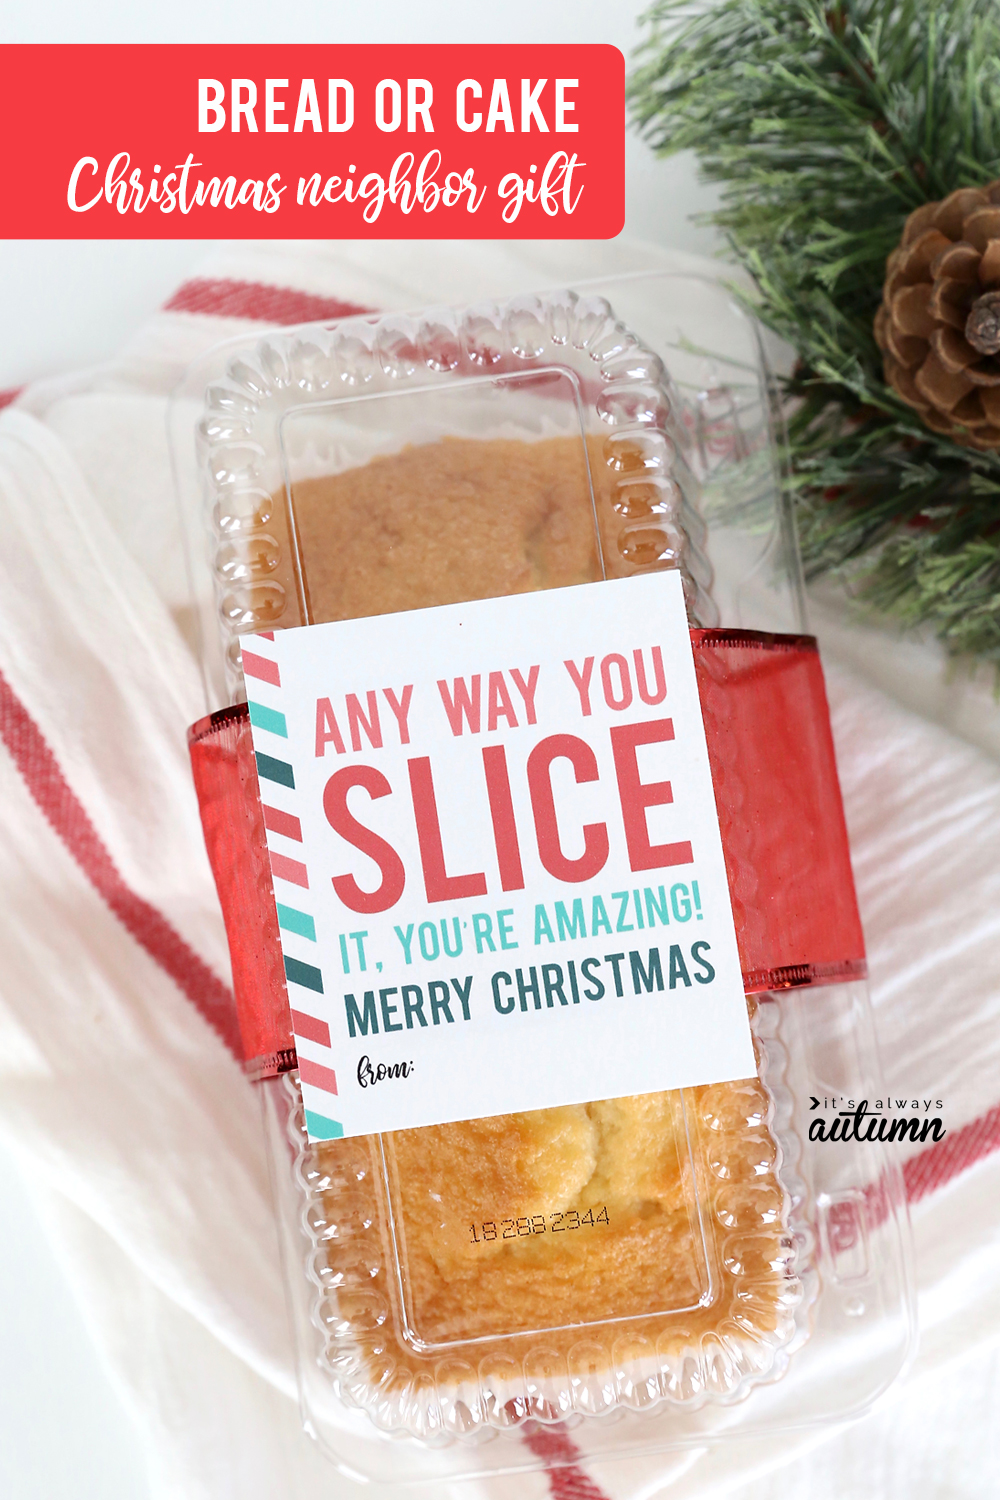 17 easy Christmas neighbor gift ideas with printable tags! Bread or cake neighbor gift idea.